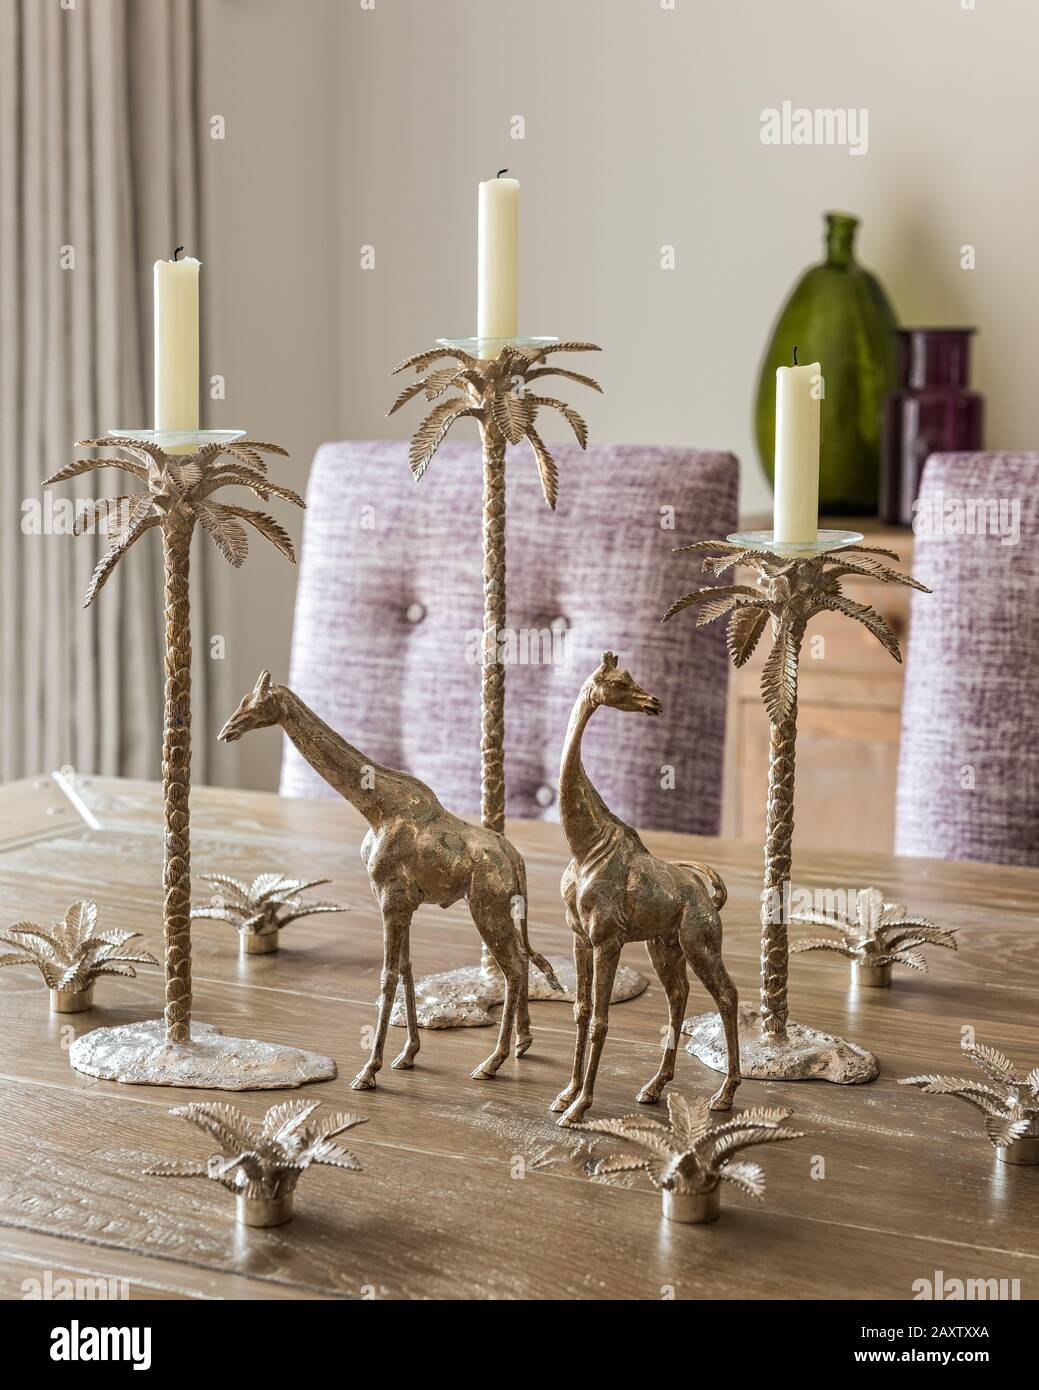 Silver Candle Holders And Giraffe Ornaments On Dining Table Stock Photo Alamy